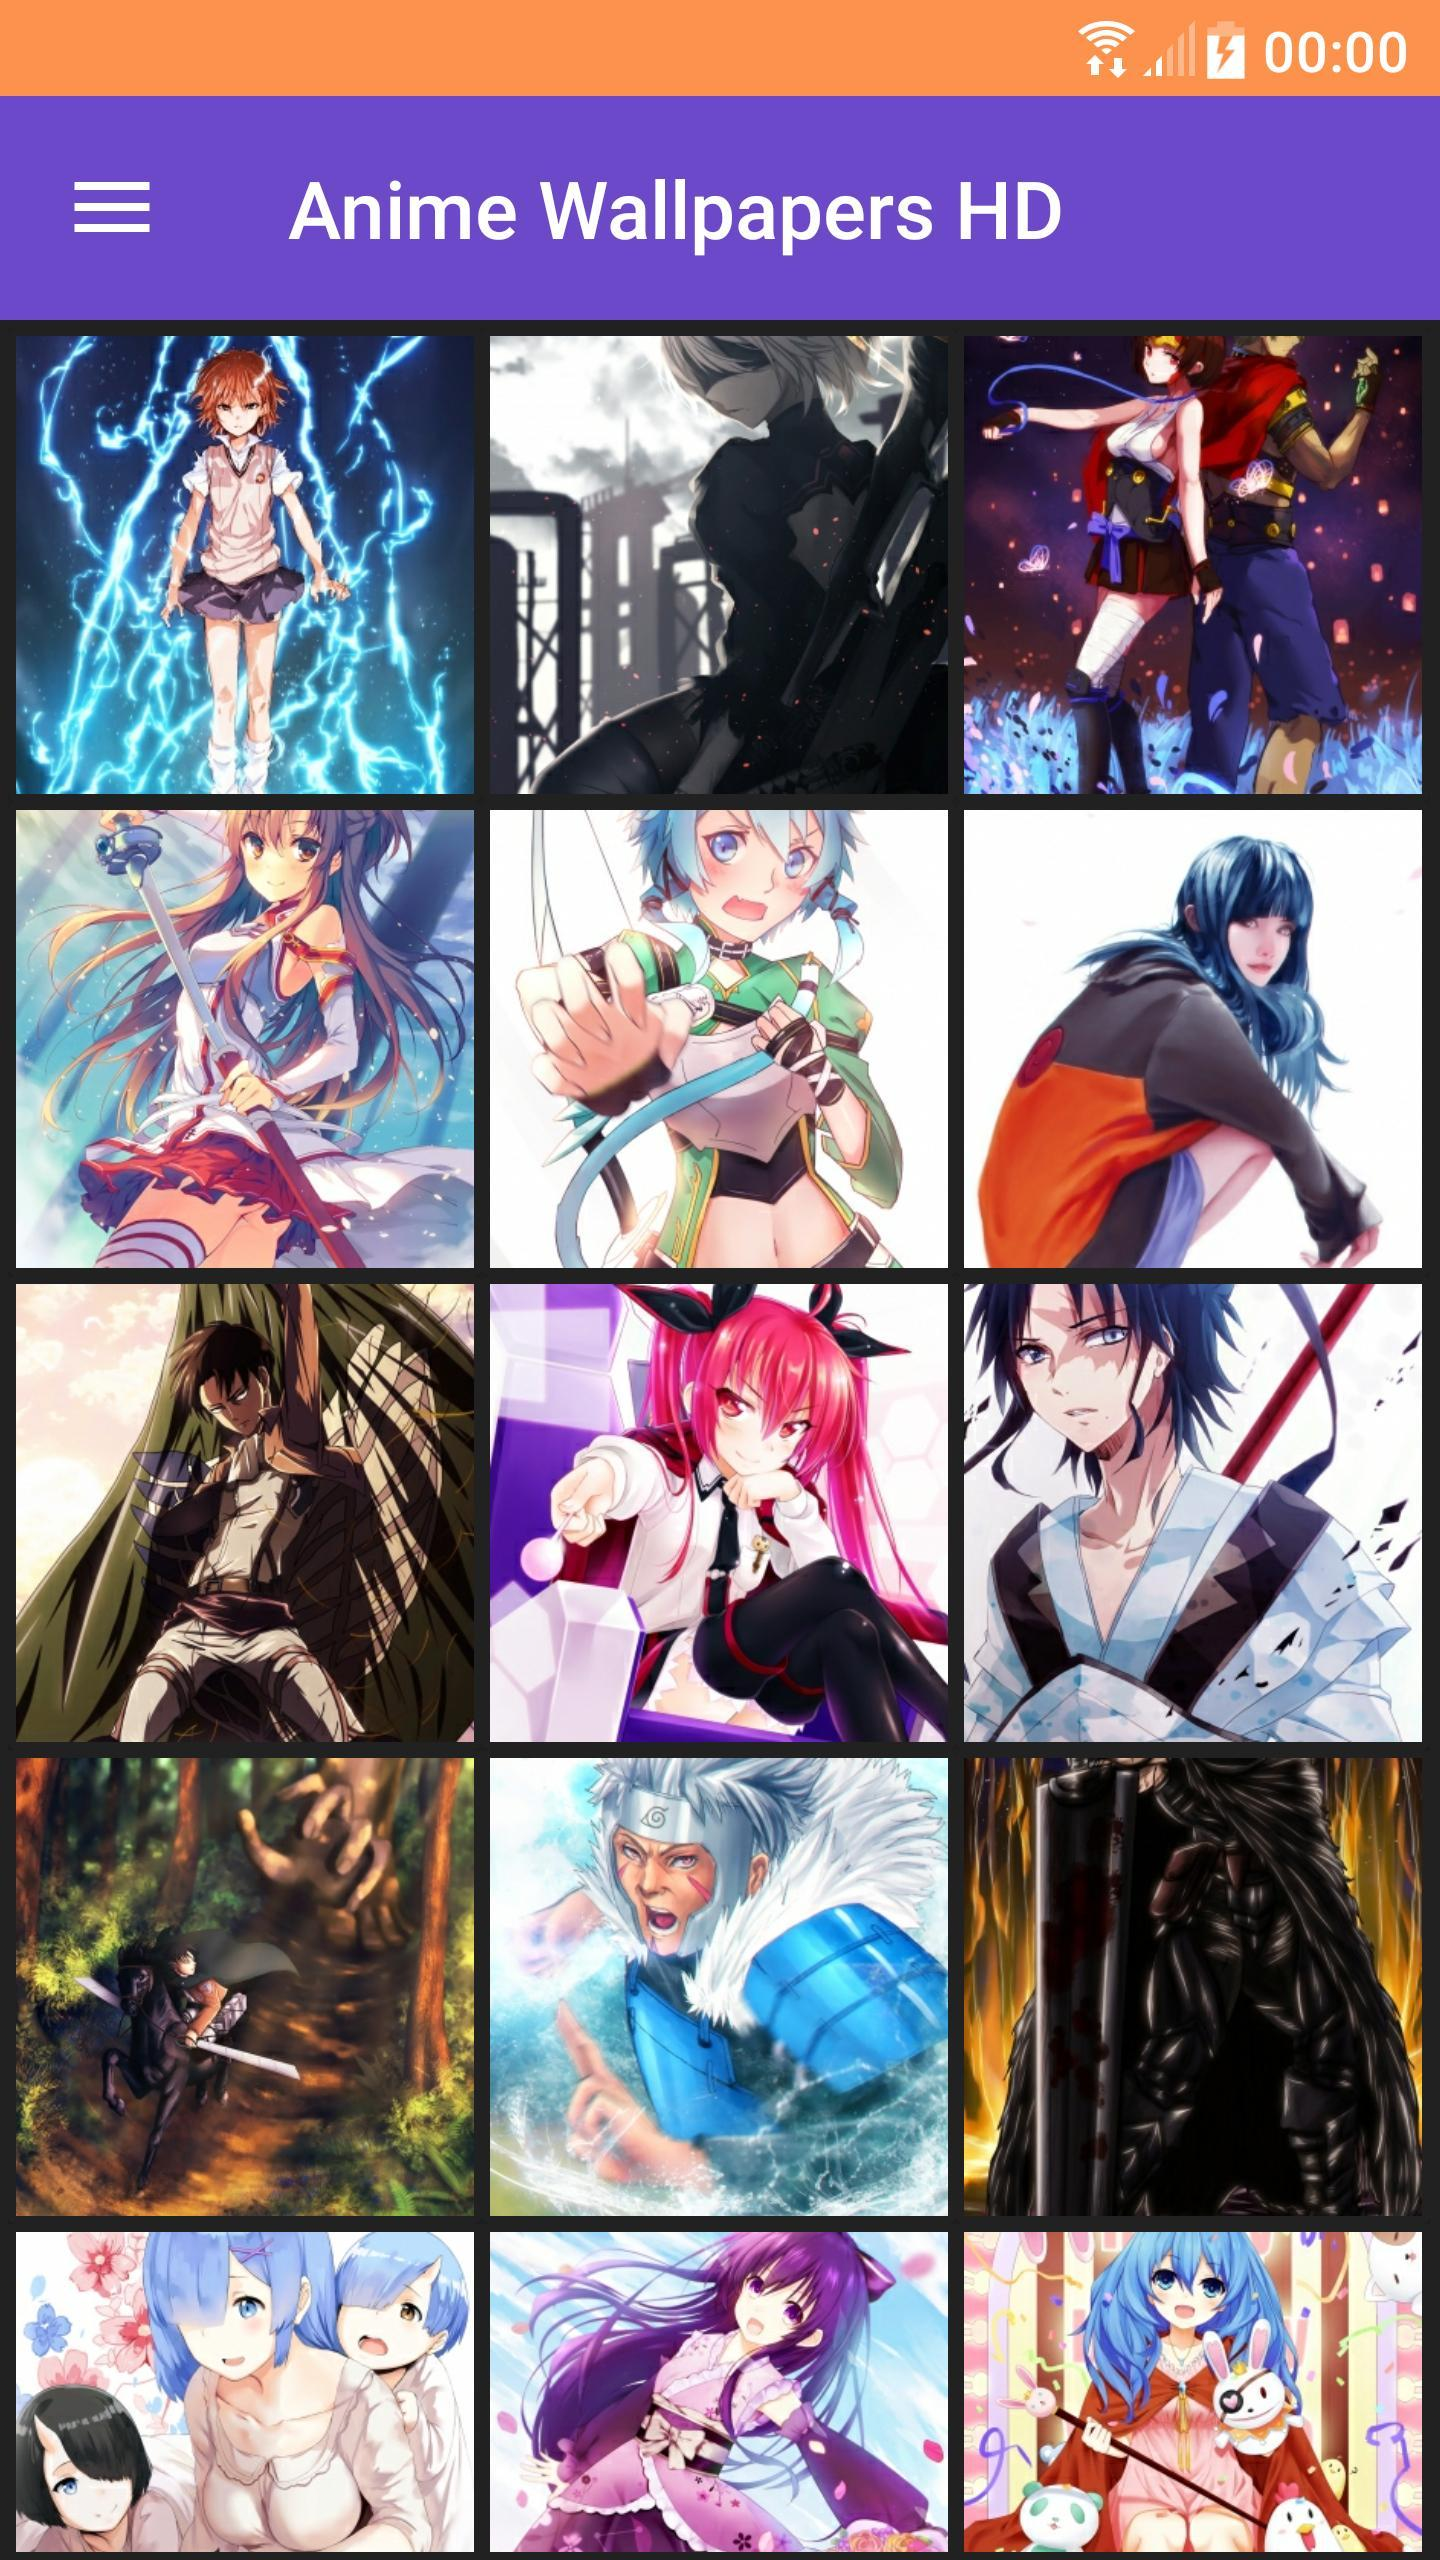 Anime Wallpapers HD for Android - APK Download